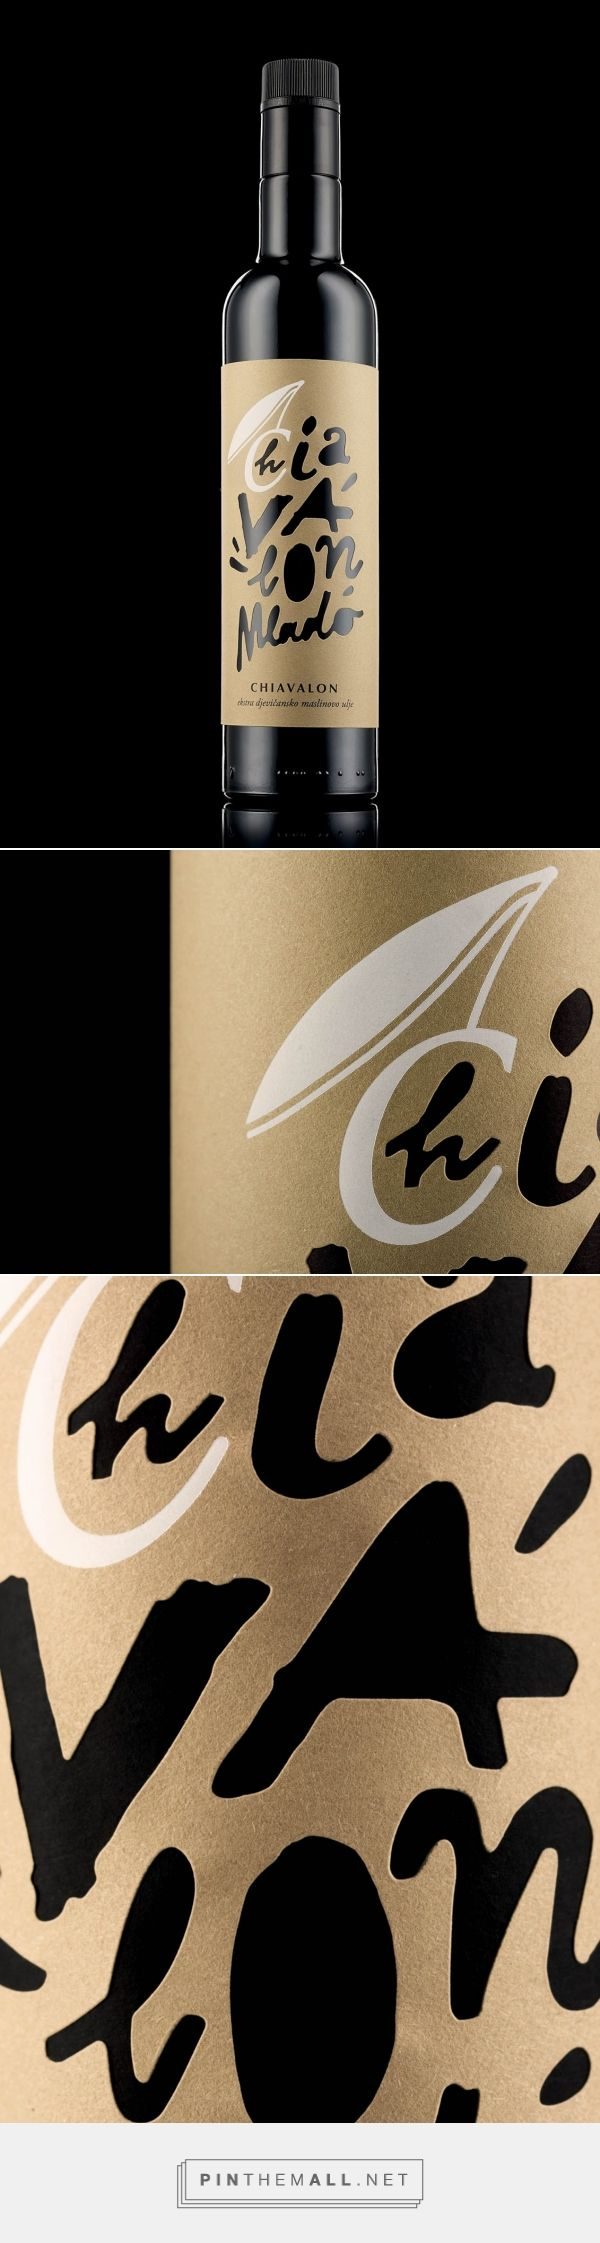 Chiavalon First - Packaging of the World - Creative Package Design Gallery - http://www.packagingoftheworld.com/2017/03/chiavalon-first.html